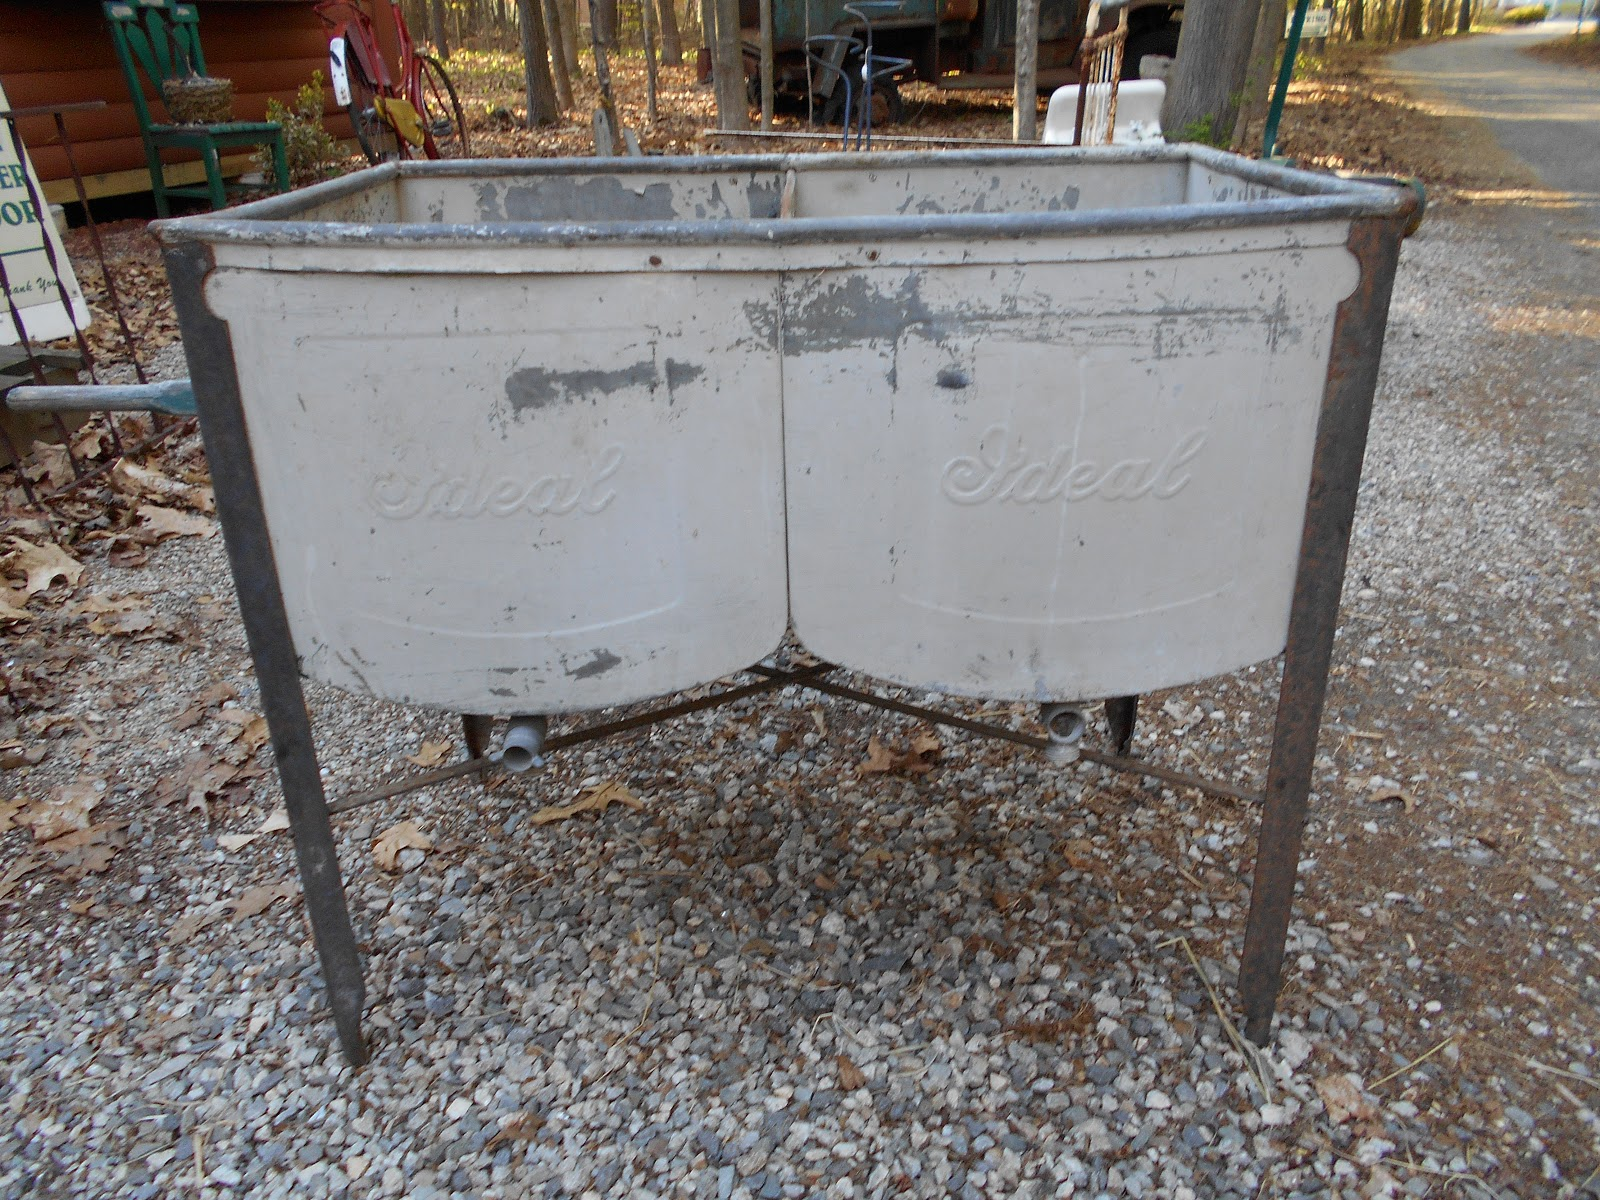 cabinet size tub vintage popular stand home ideas amazing free kitchen bathtub design drop farmhouse rectangle full with rustic in lowes laundry and bathroom most galvanized wash for sinks vessel sink slop farm on photo utility depot awesome standing of surprising fixtures bucket double